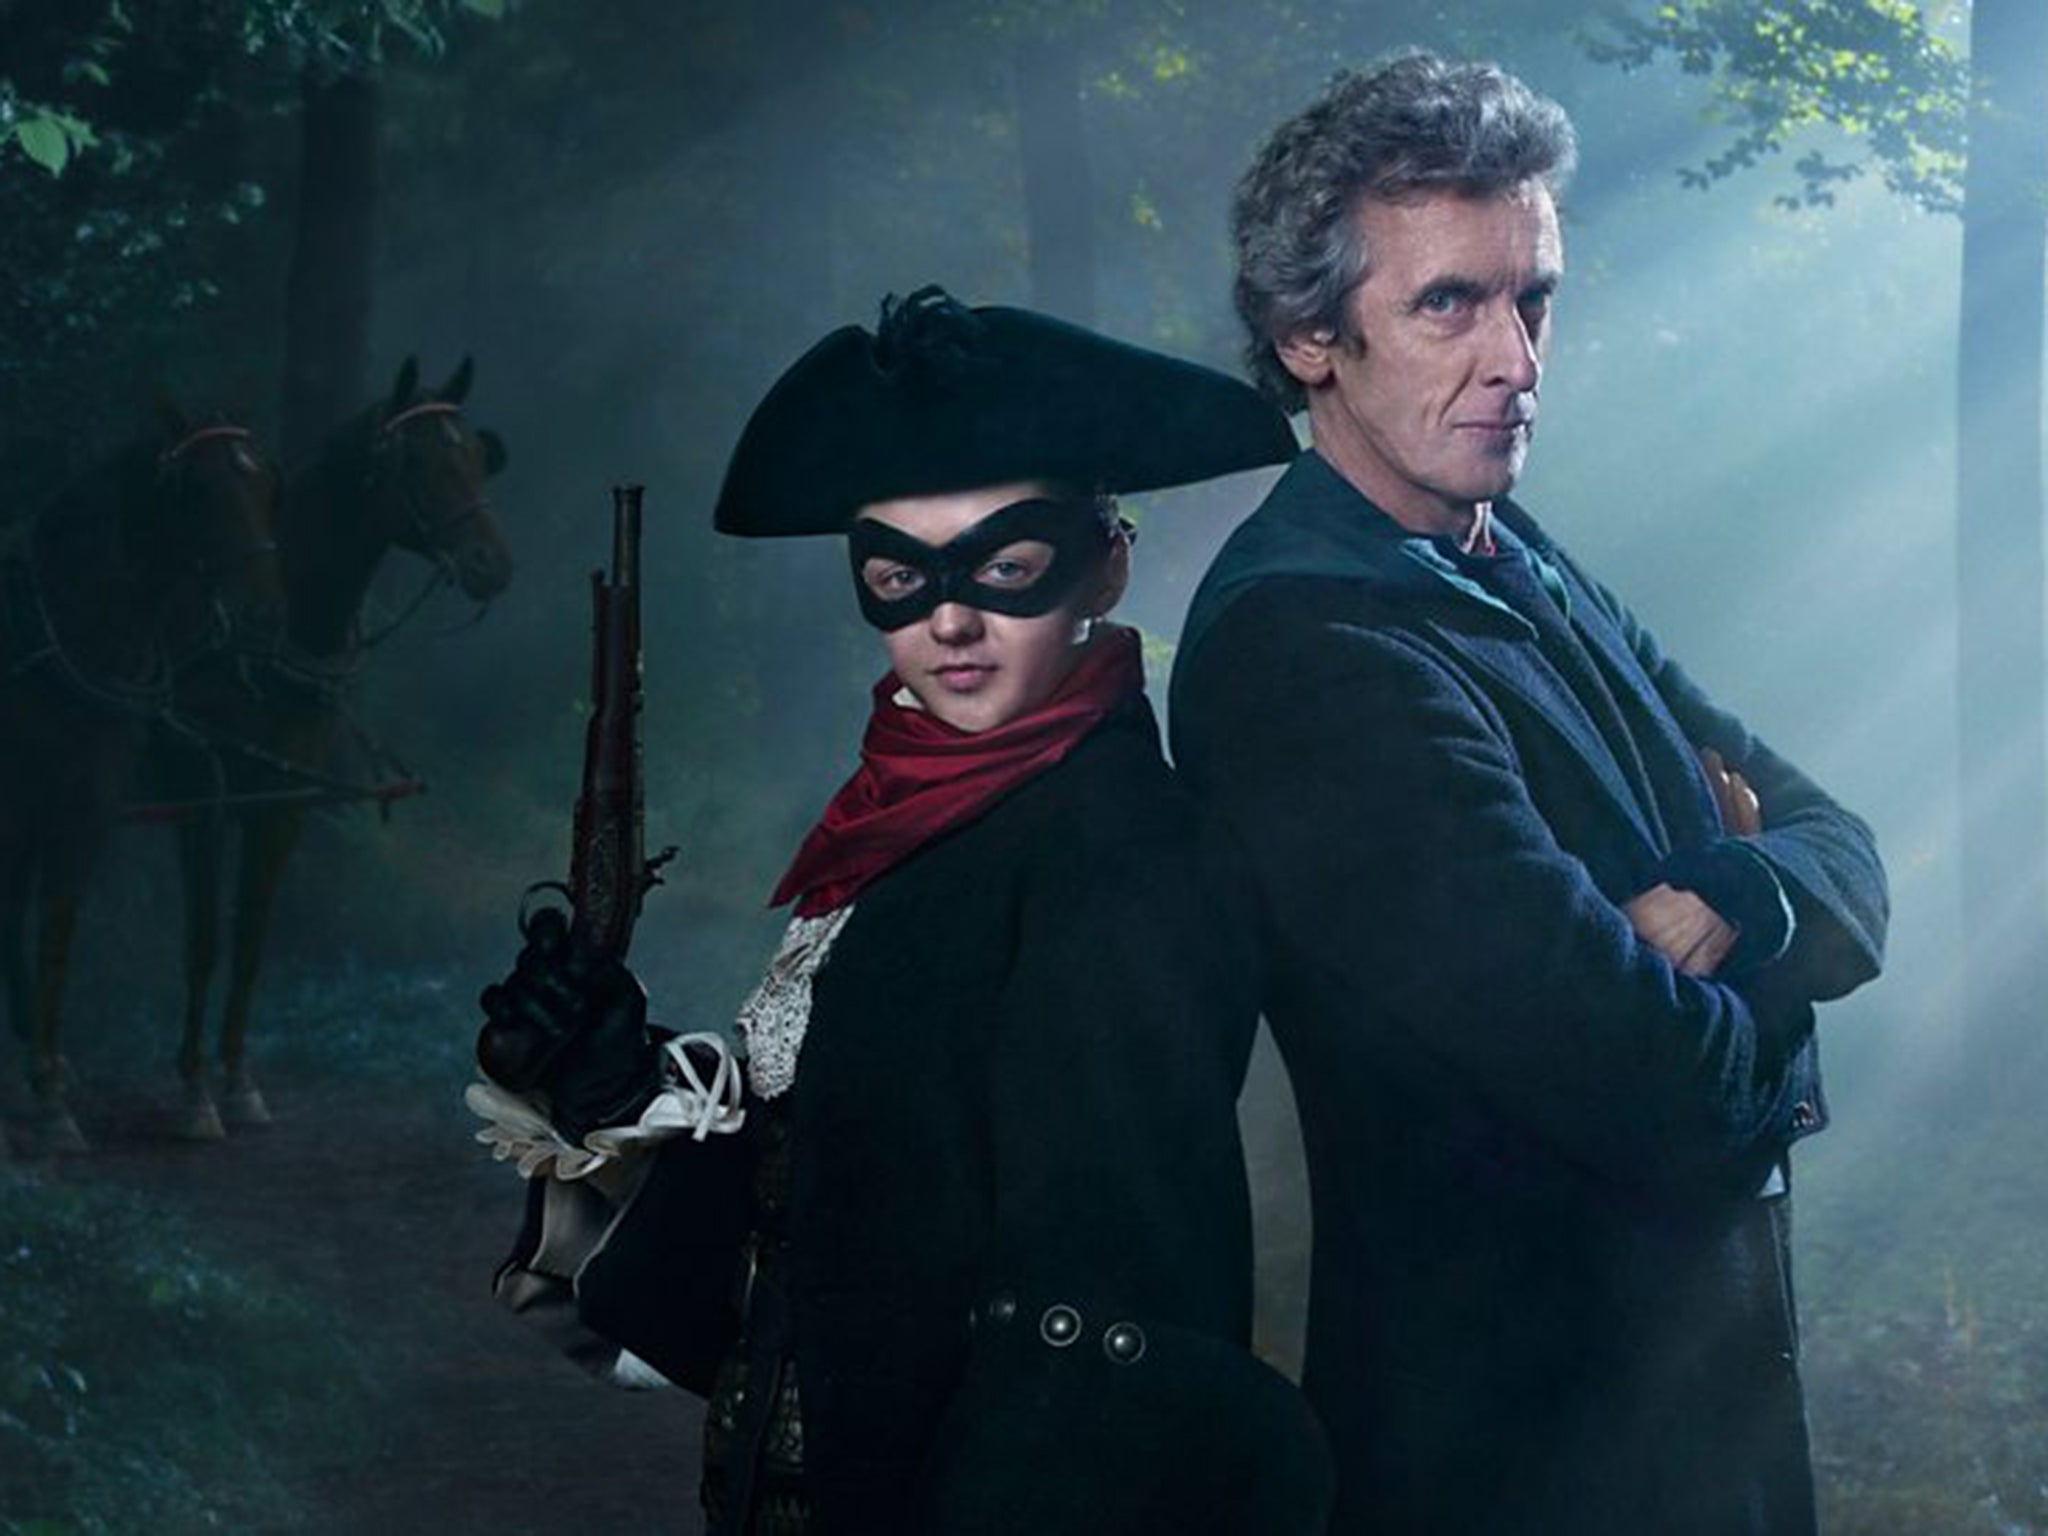 Star Wars And Back To The Future Meet In Bonkers Doctor Who Easter Egg The Independent The Independent